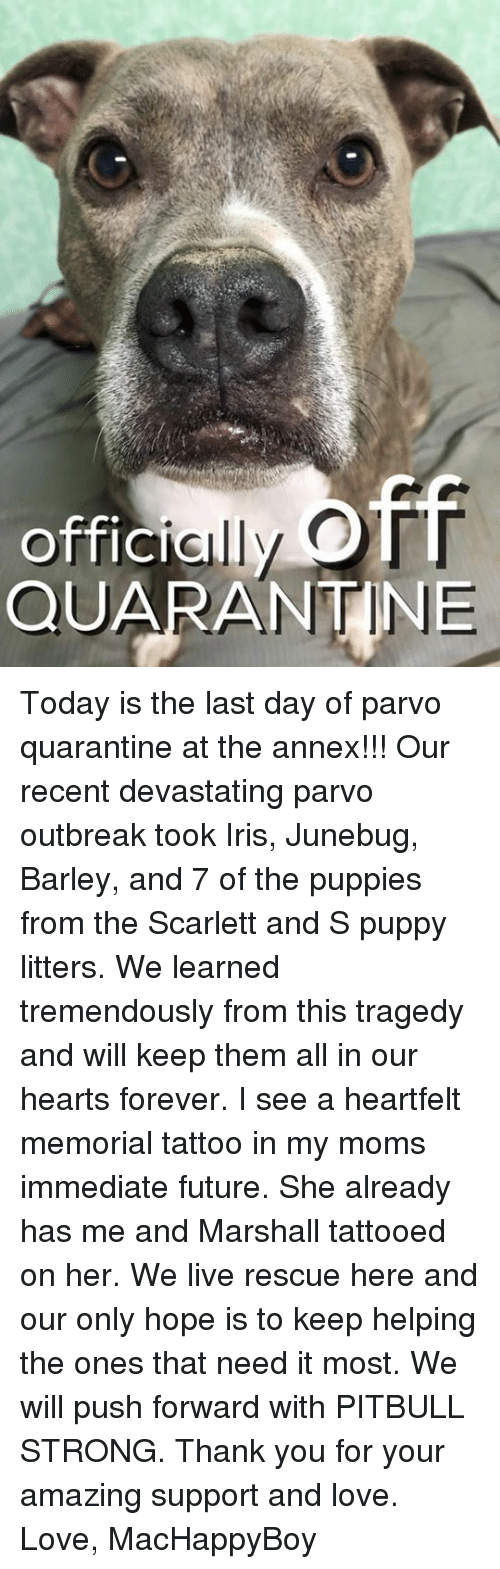 Heartfeltly: OTT  offici  QUARANTINE Today is the last day of parvo quarantine at the annex!!! Our recent devastating parvo outbreak took Iris, Junebug, Barley, and 7 of the puppies from the Scarlett and S puppy litters. We learned tremendously from this tragedy and will keep them all in our hearts forever. I see a heartfelt memorial tattoo in my moms immediate future. She already has me and Marshall tattooed on her. We live rescue here and our only hope is to keep helping the ones that need it most. We will push forward with PITBULL STRONG. Thank you for your amazing support and love.   Love, MacHappyBoy